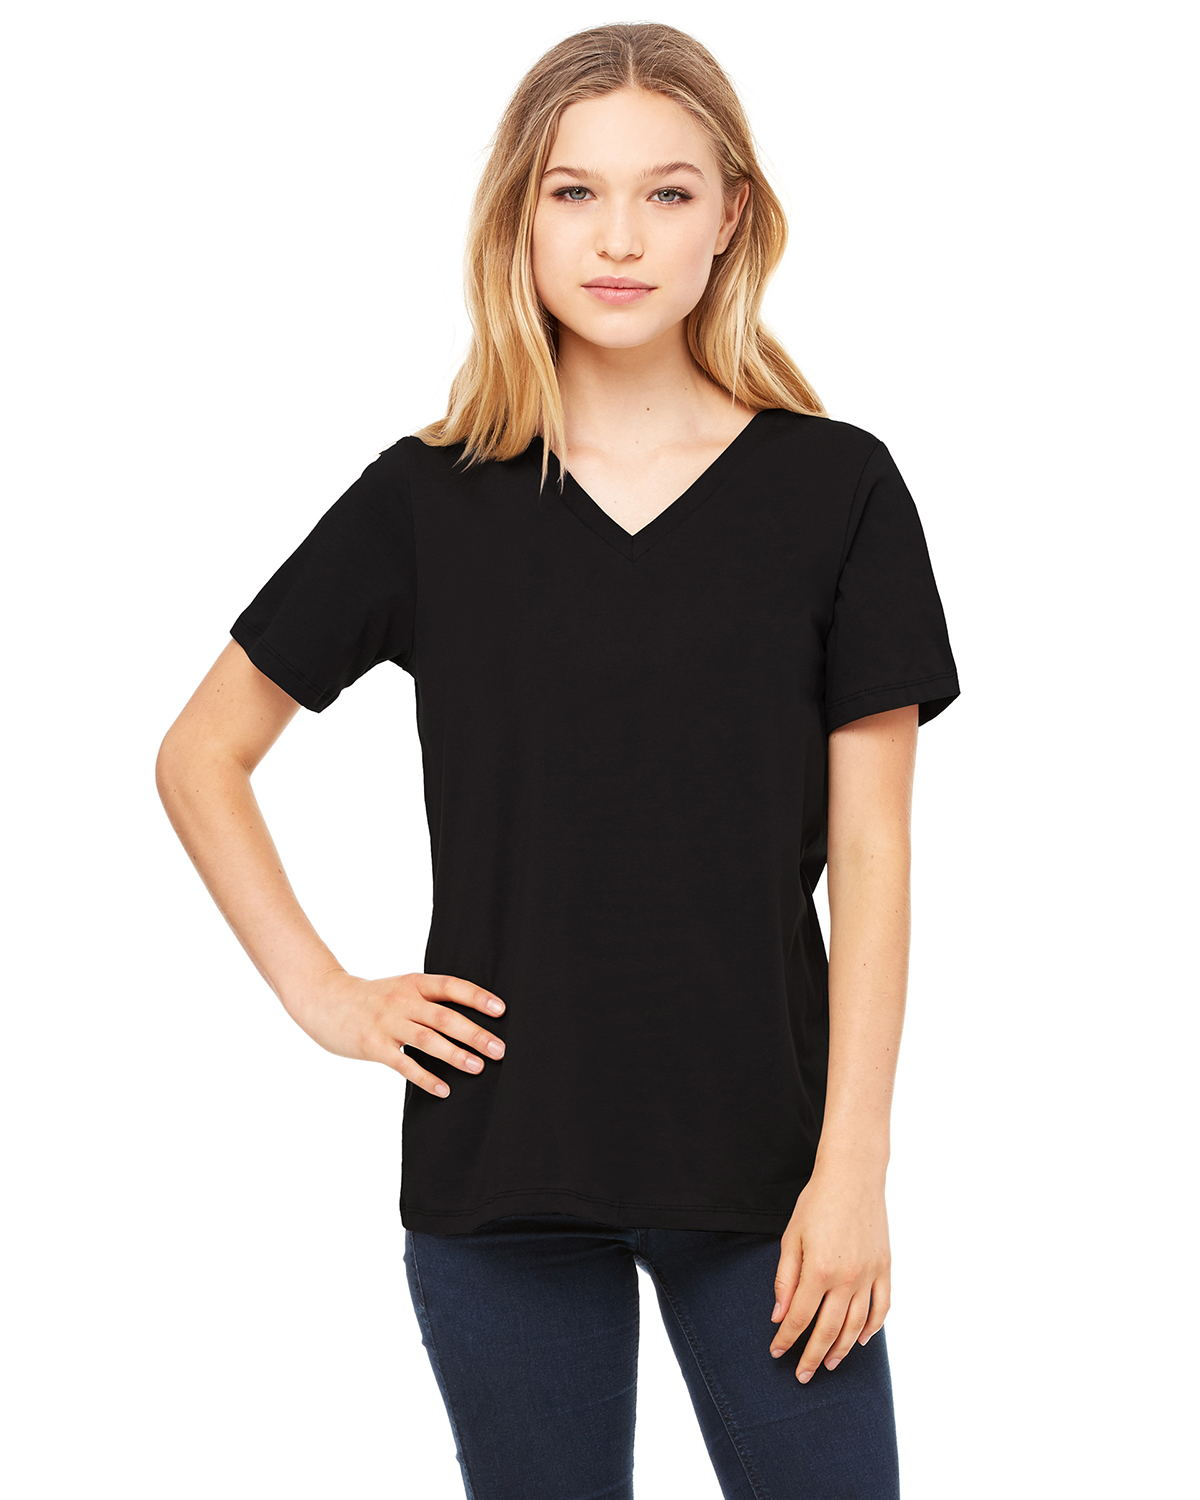 Canvas 6405 - Missy Jersey Short-Sleeve V-Neck Tee